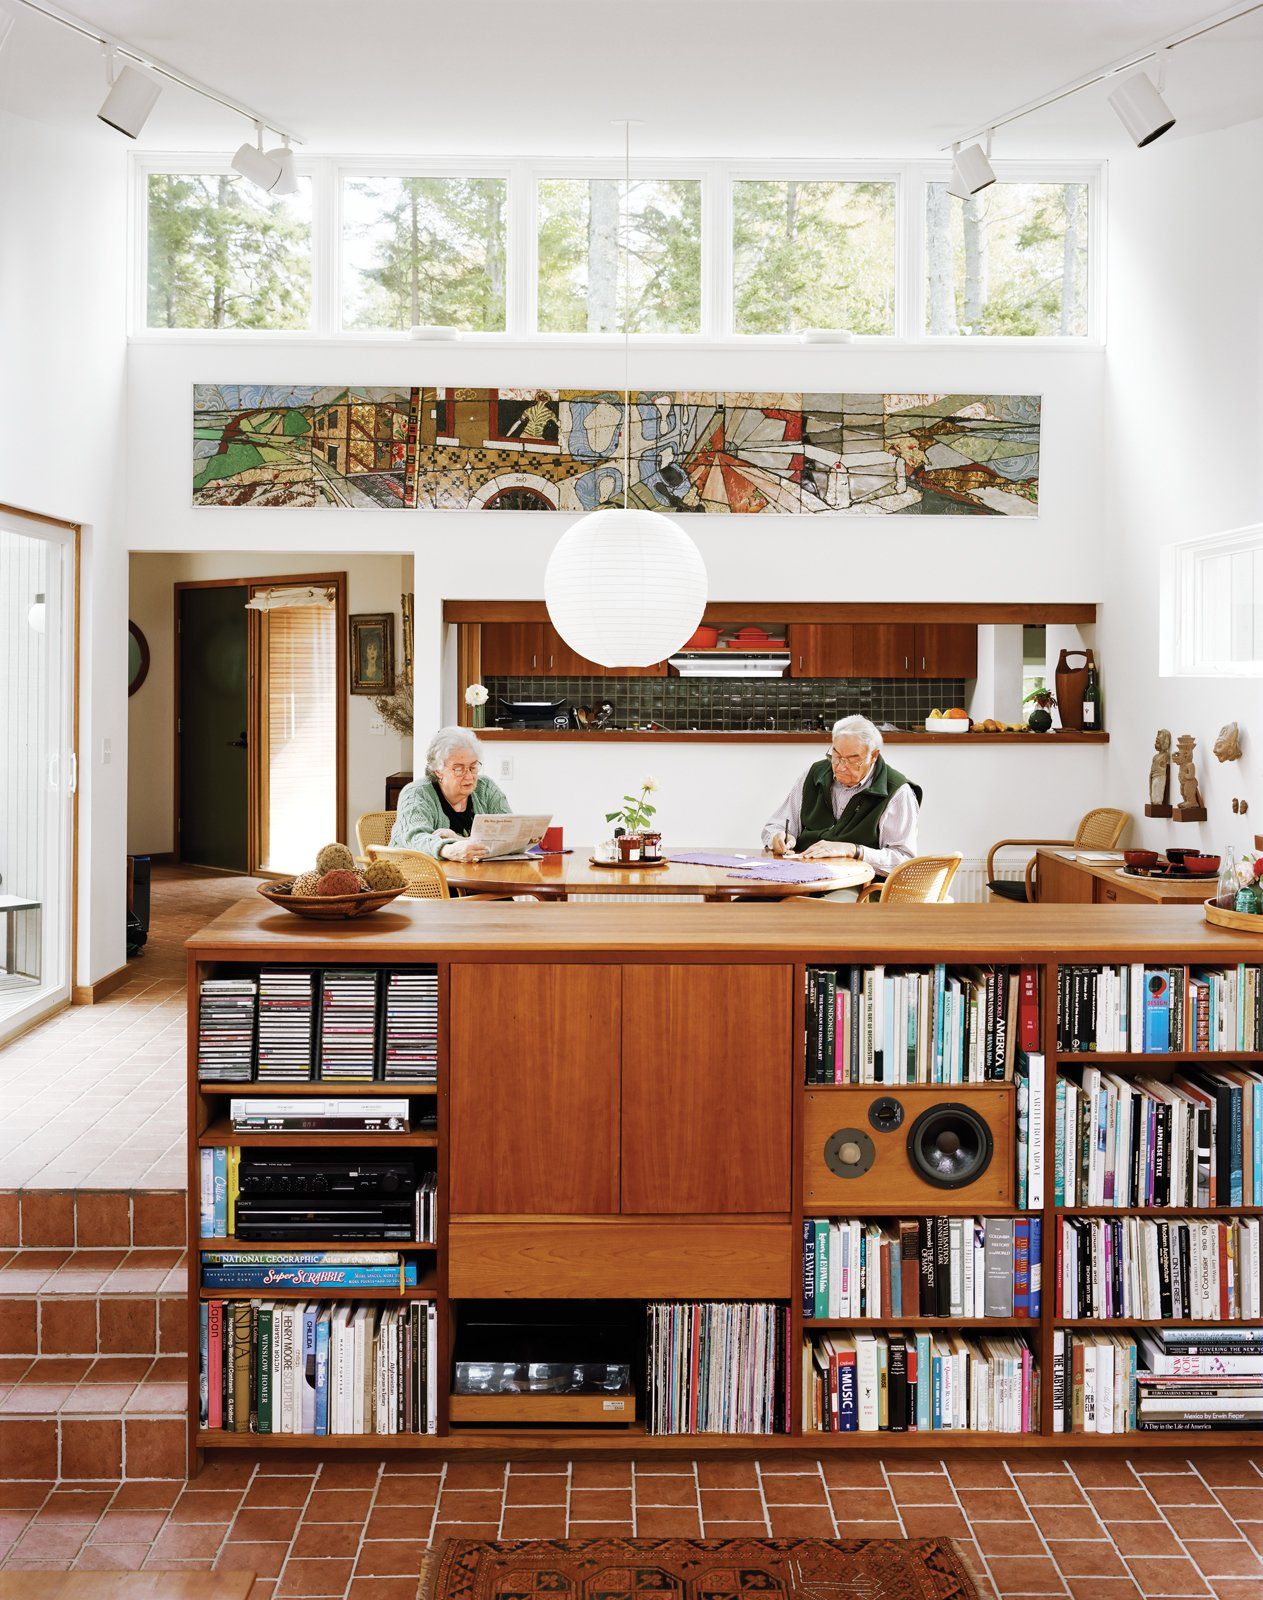 Cohen and his wife, Sally, sit in the dining room, which along with the connected living room, is a focal point of the house, lighted in part by high, remote-controlled clerestory windows. Tagged: Living Room, Shelves, Pendant Lighting, Storage, and Ceramic Tile Floor. The Right Track - Photo 1 of 15